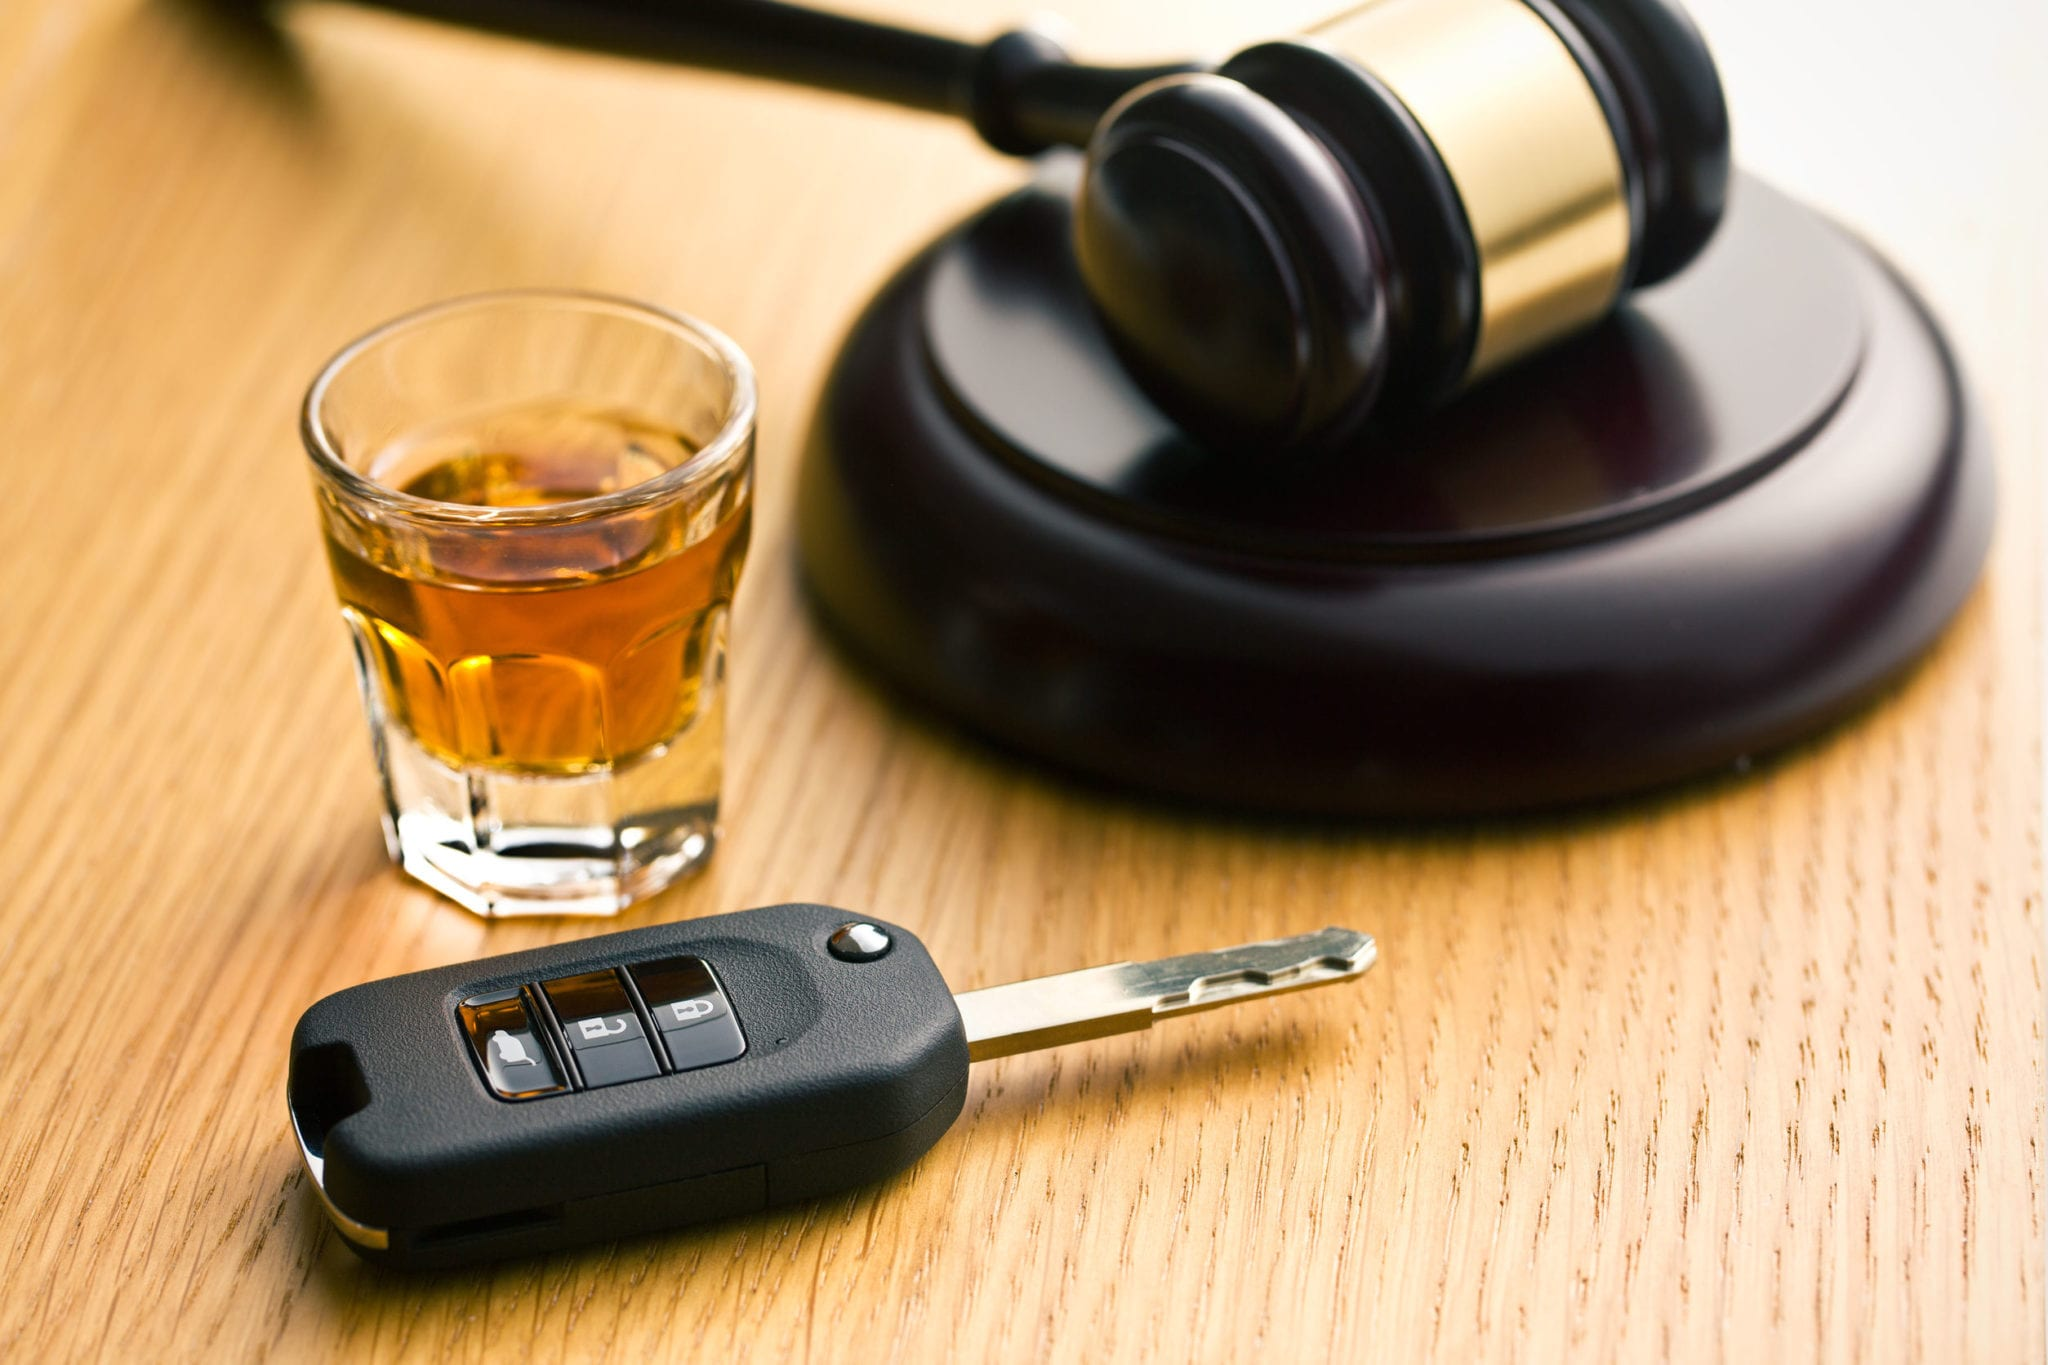 DWI: Should It Be a Crime to Refuse Blood and Breath Testing?